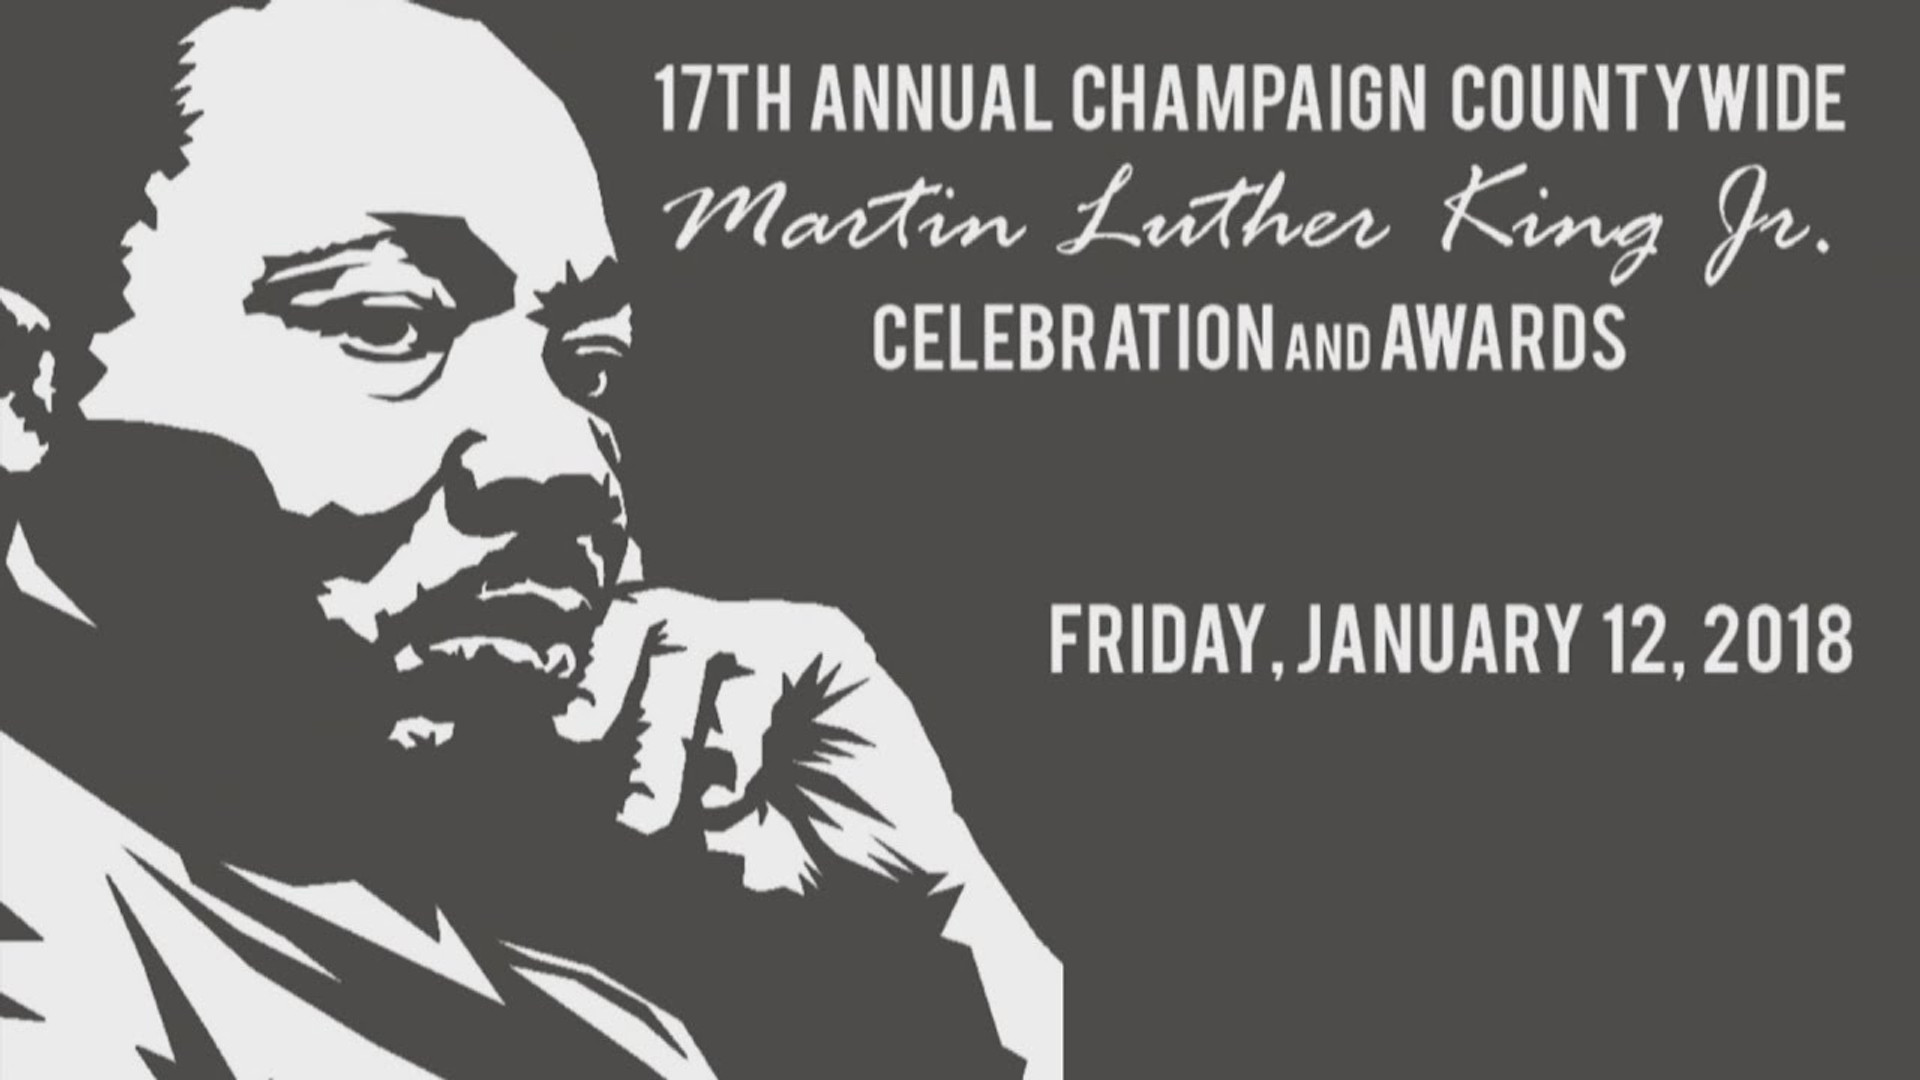 17th Annual Champaign Countywide MLK Celebration